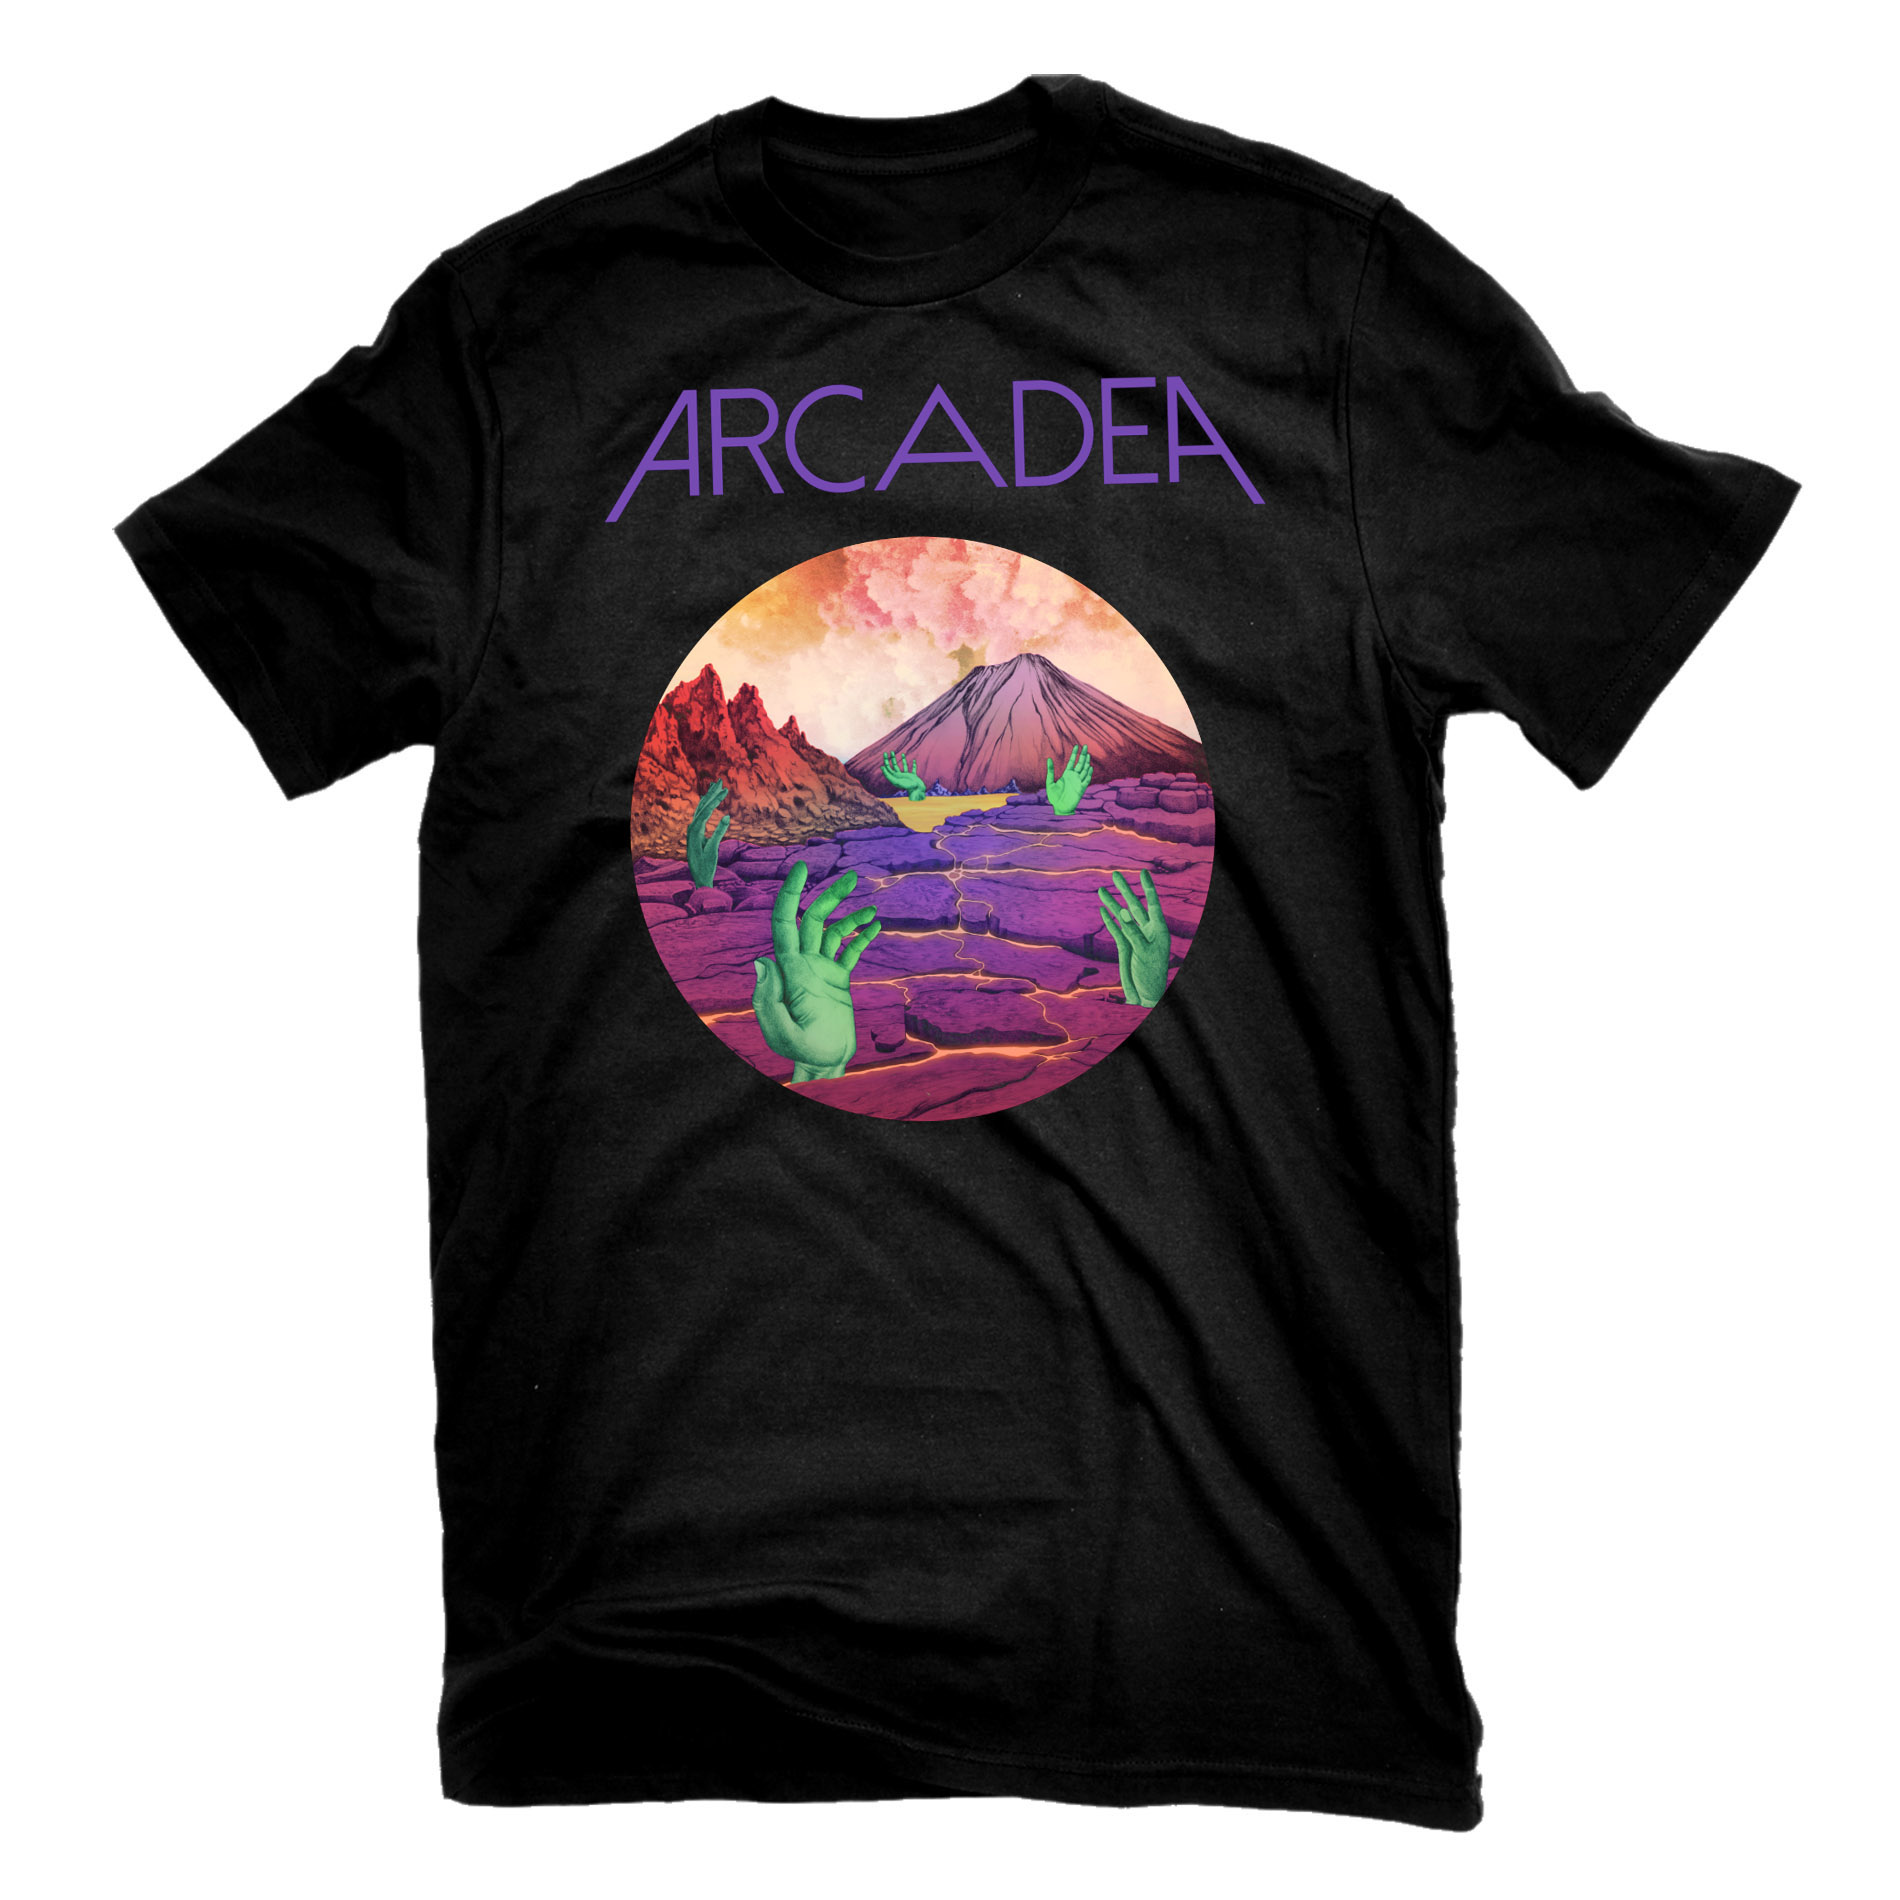 Arcadea T Shirt + CD Bundle